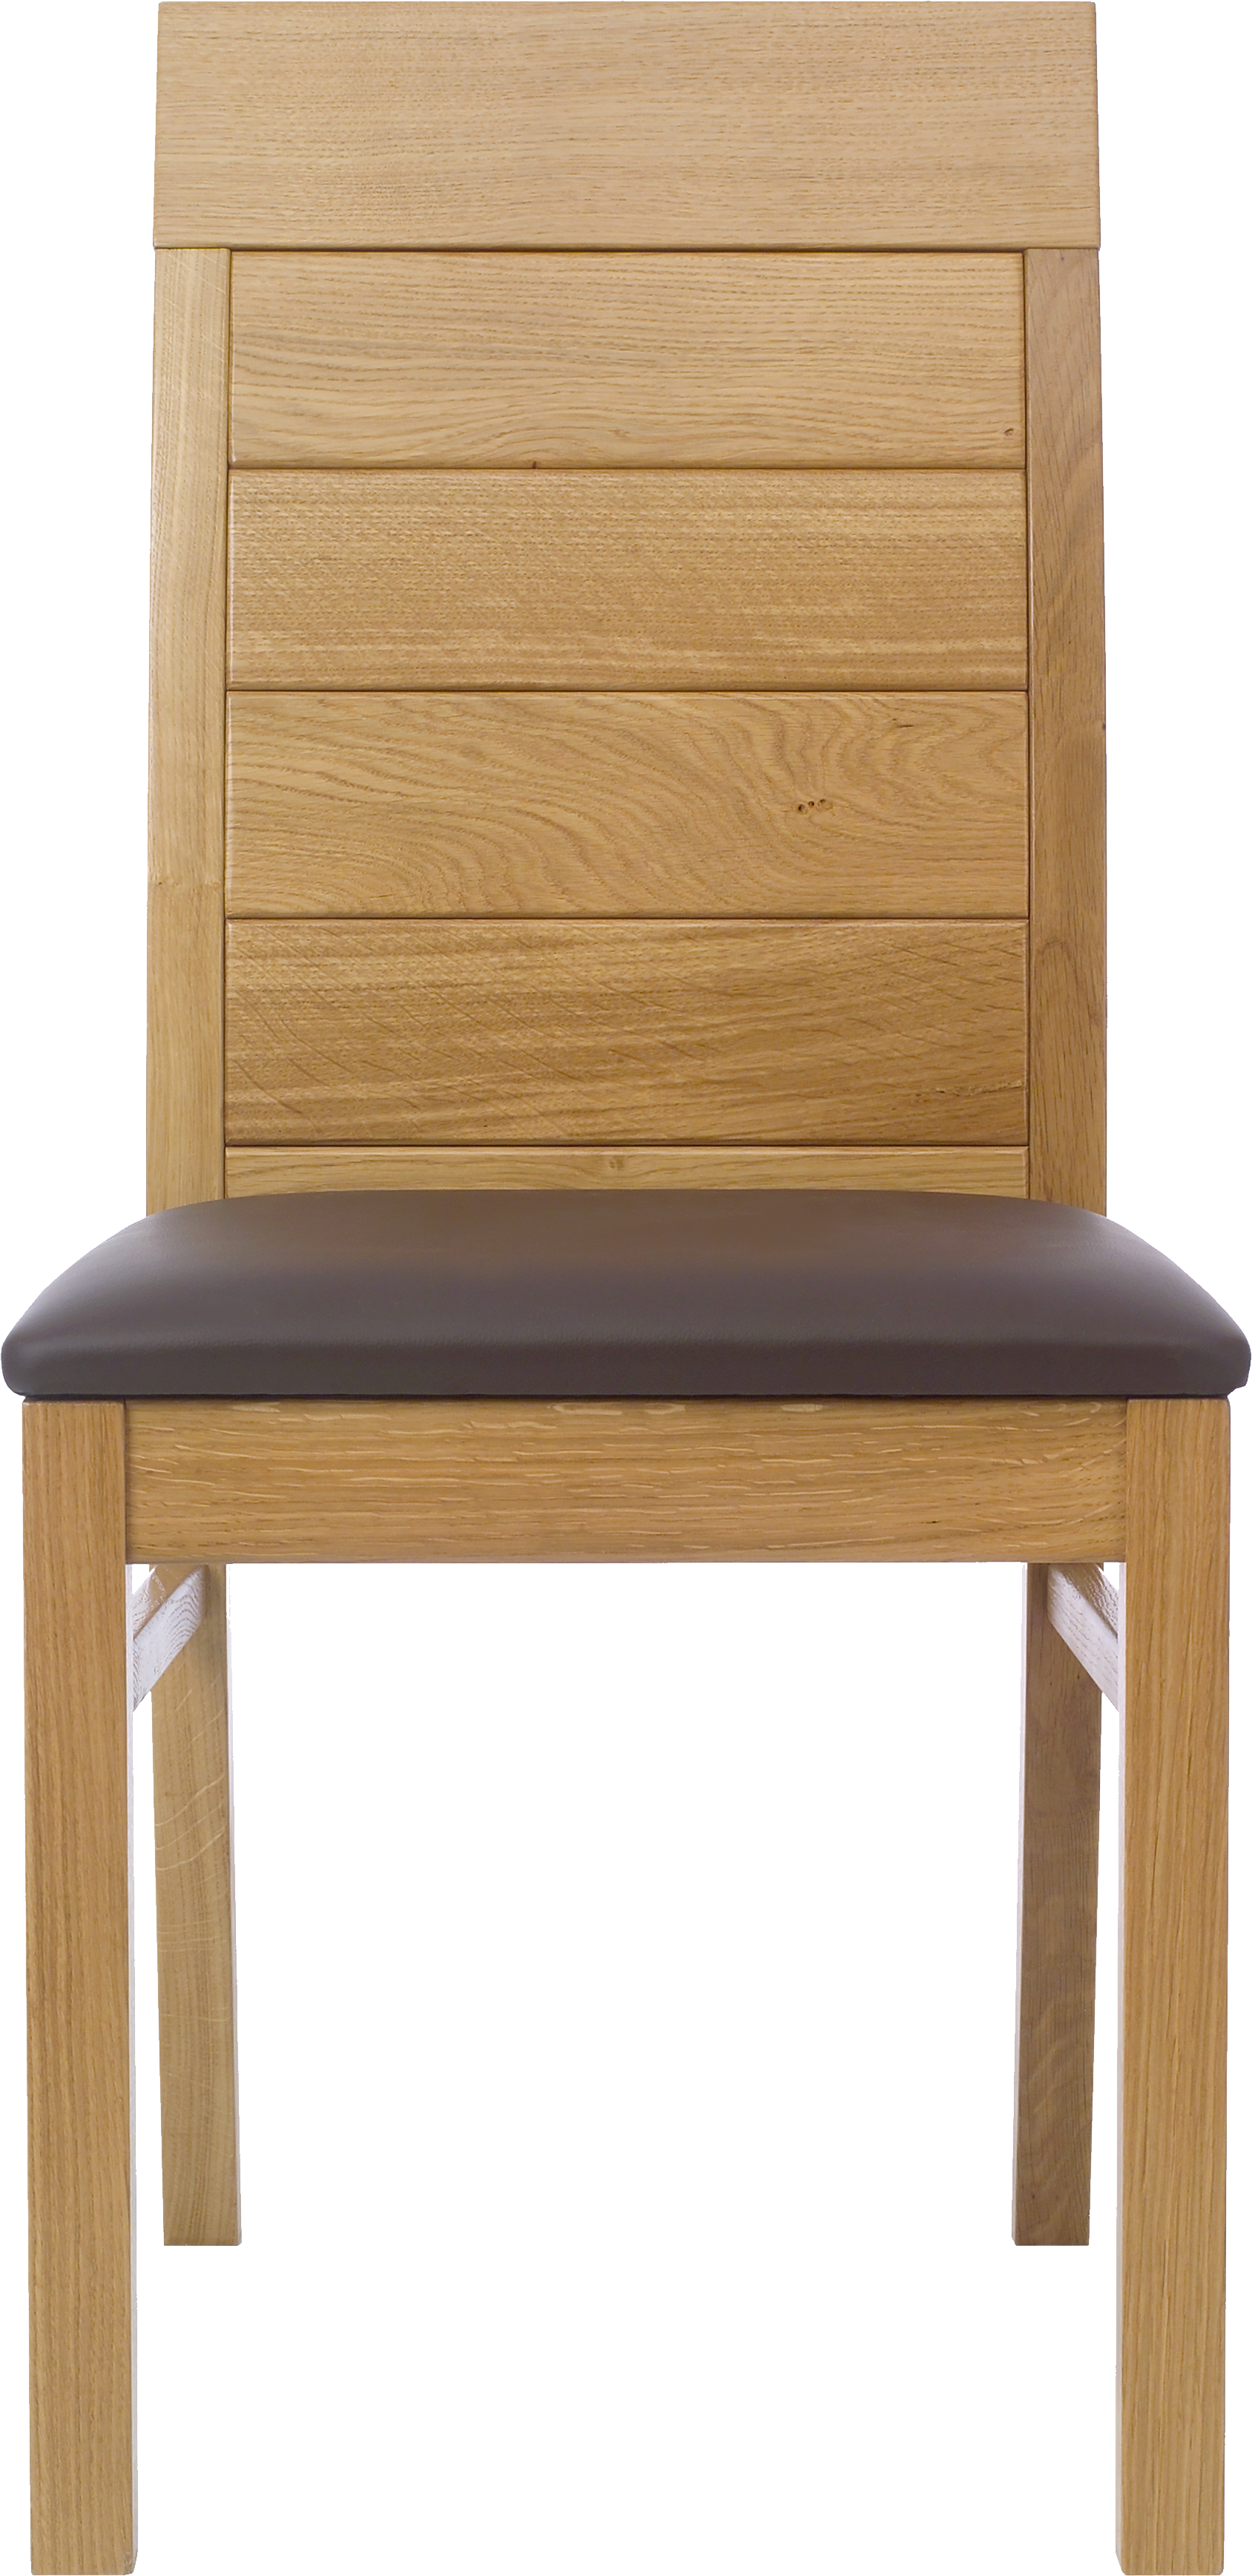 jpg Chair clipart transparent background. Png images free download.